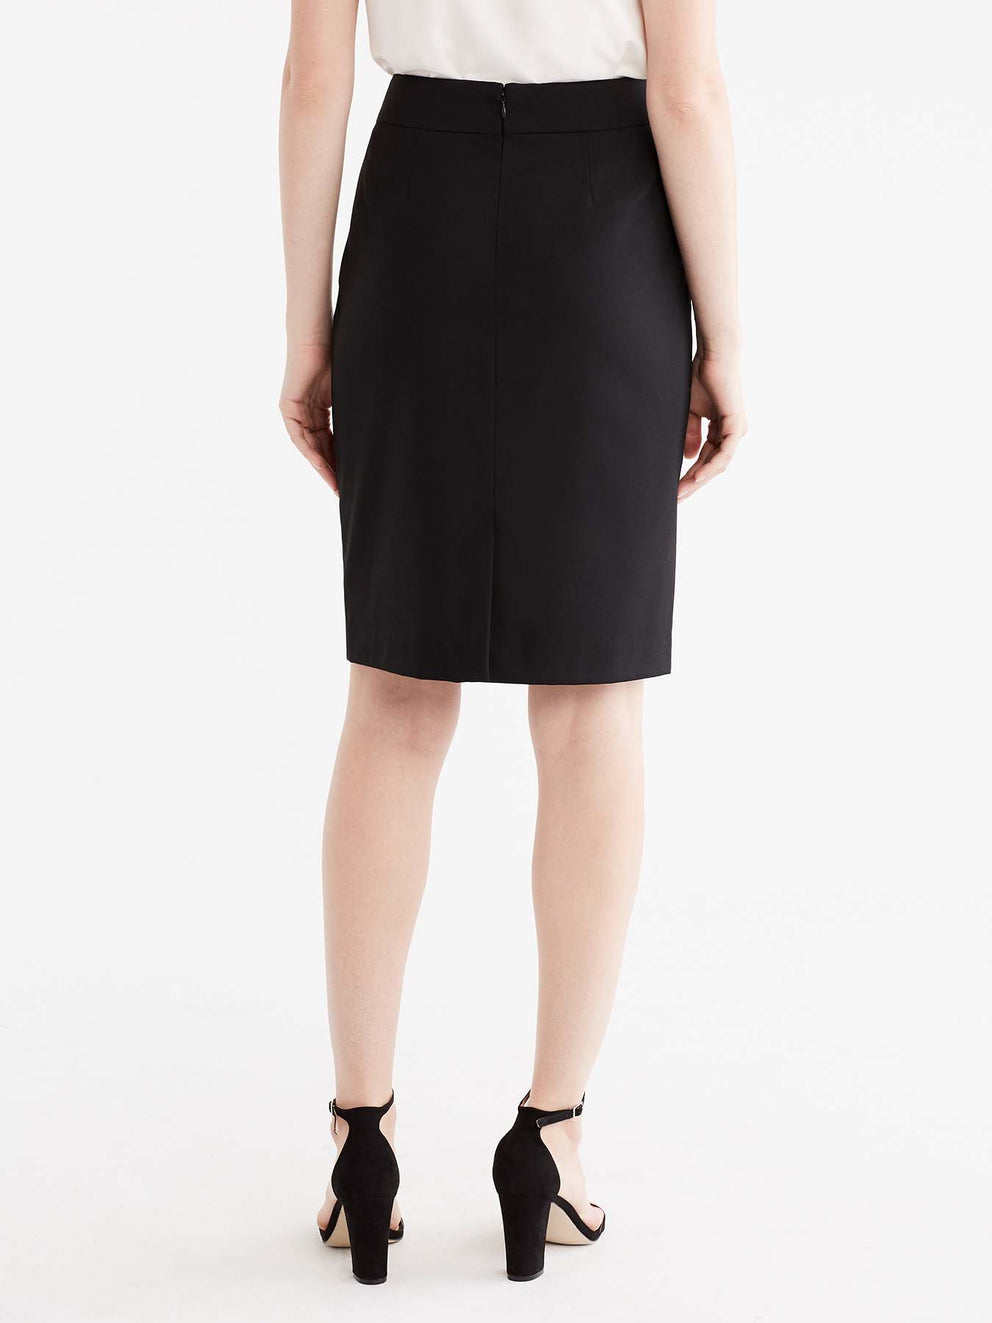 The Jones New York Washable Pencil Skirt in color Black - Image Position 6